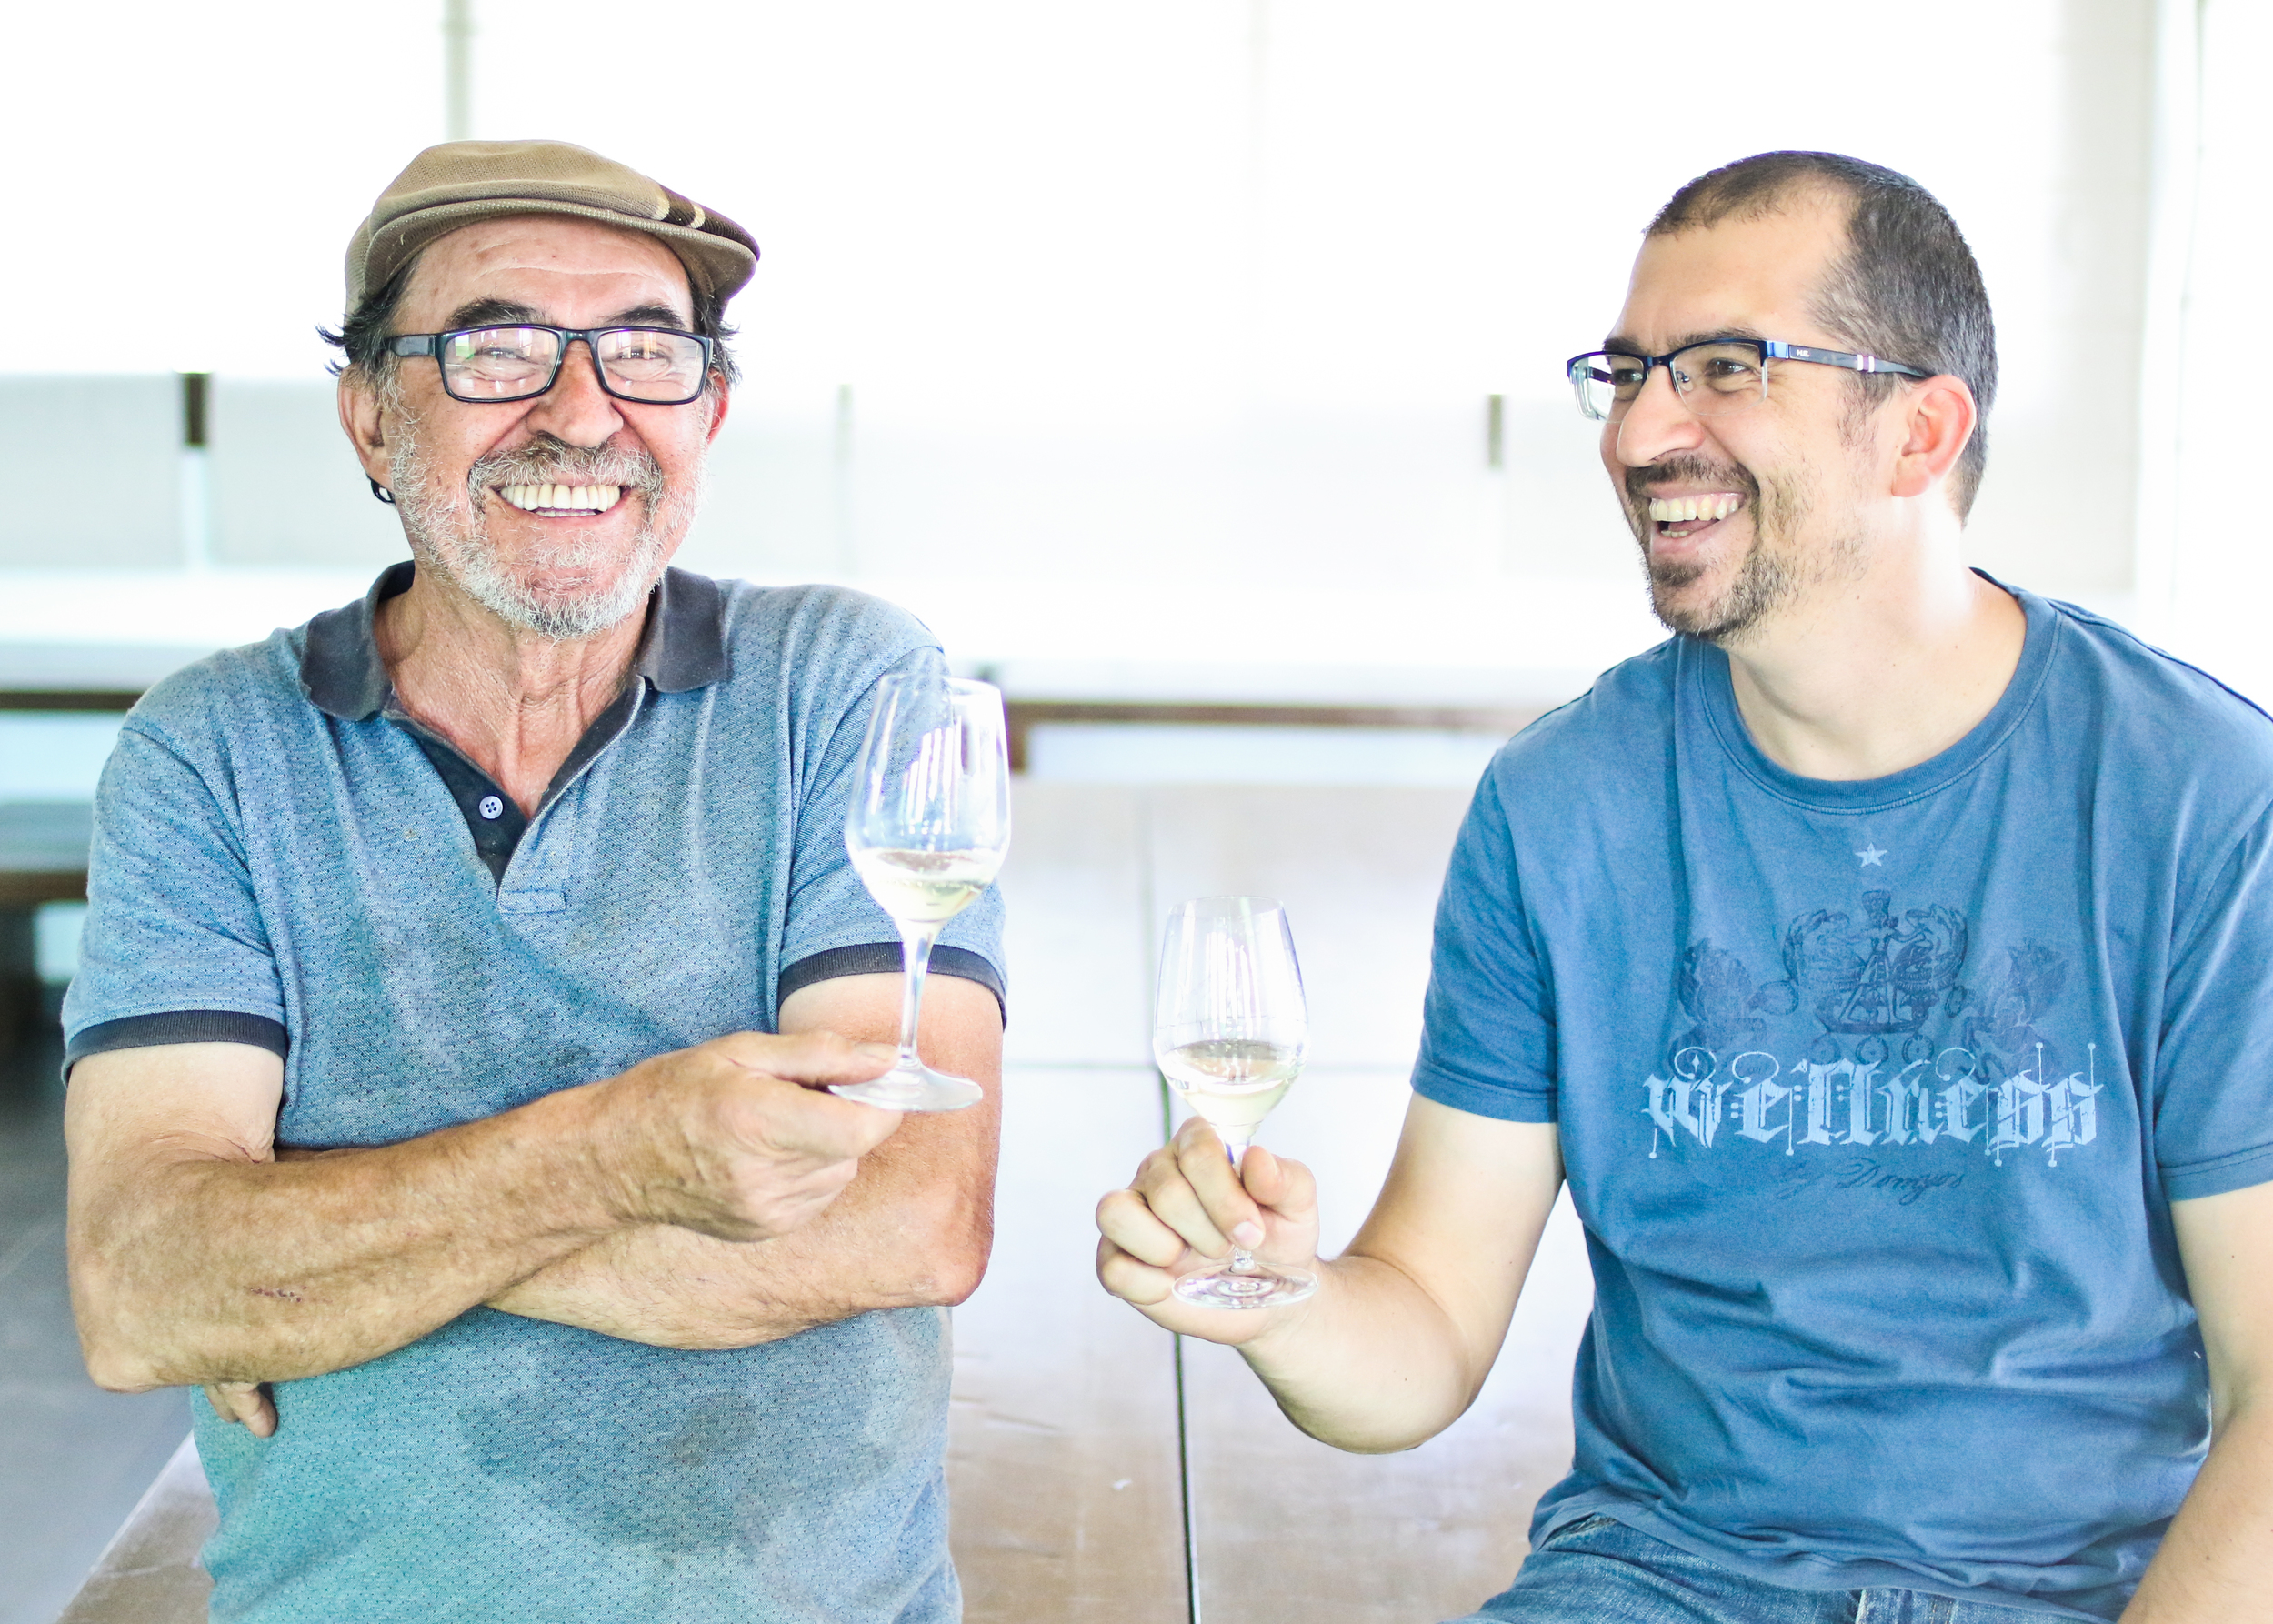 Getting to Know Lorenzo and Manolo